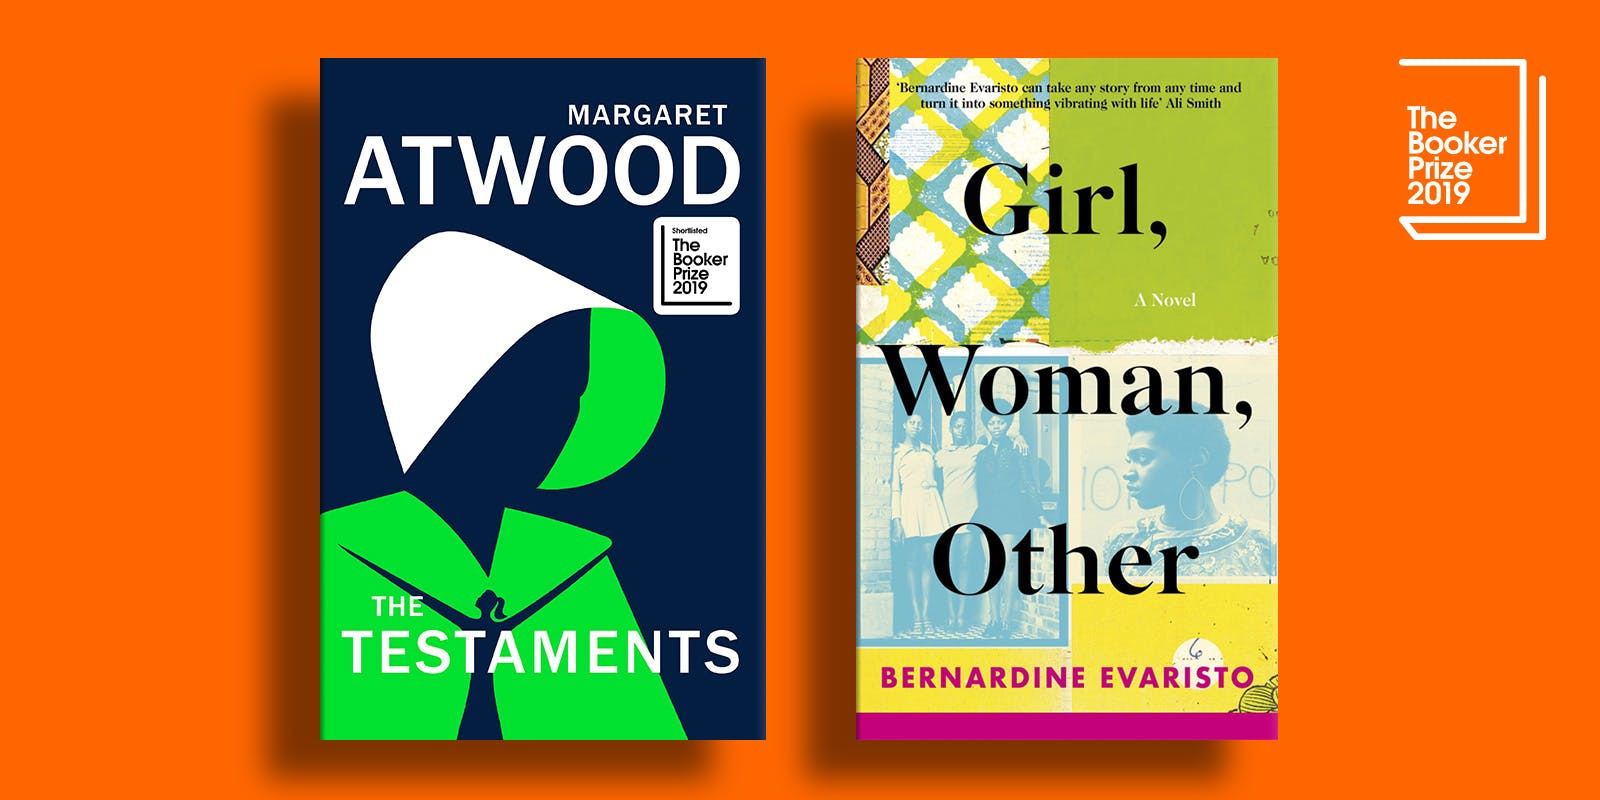 Atwood, Evaristo: joint Booker winners